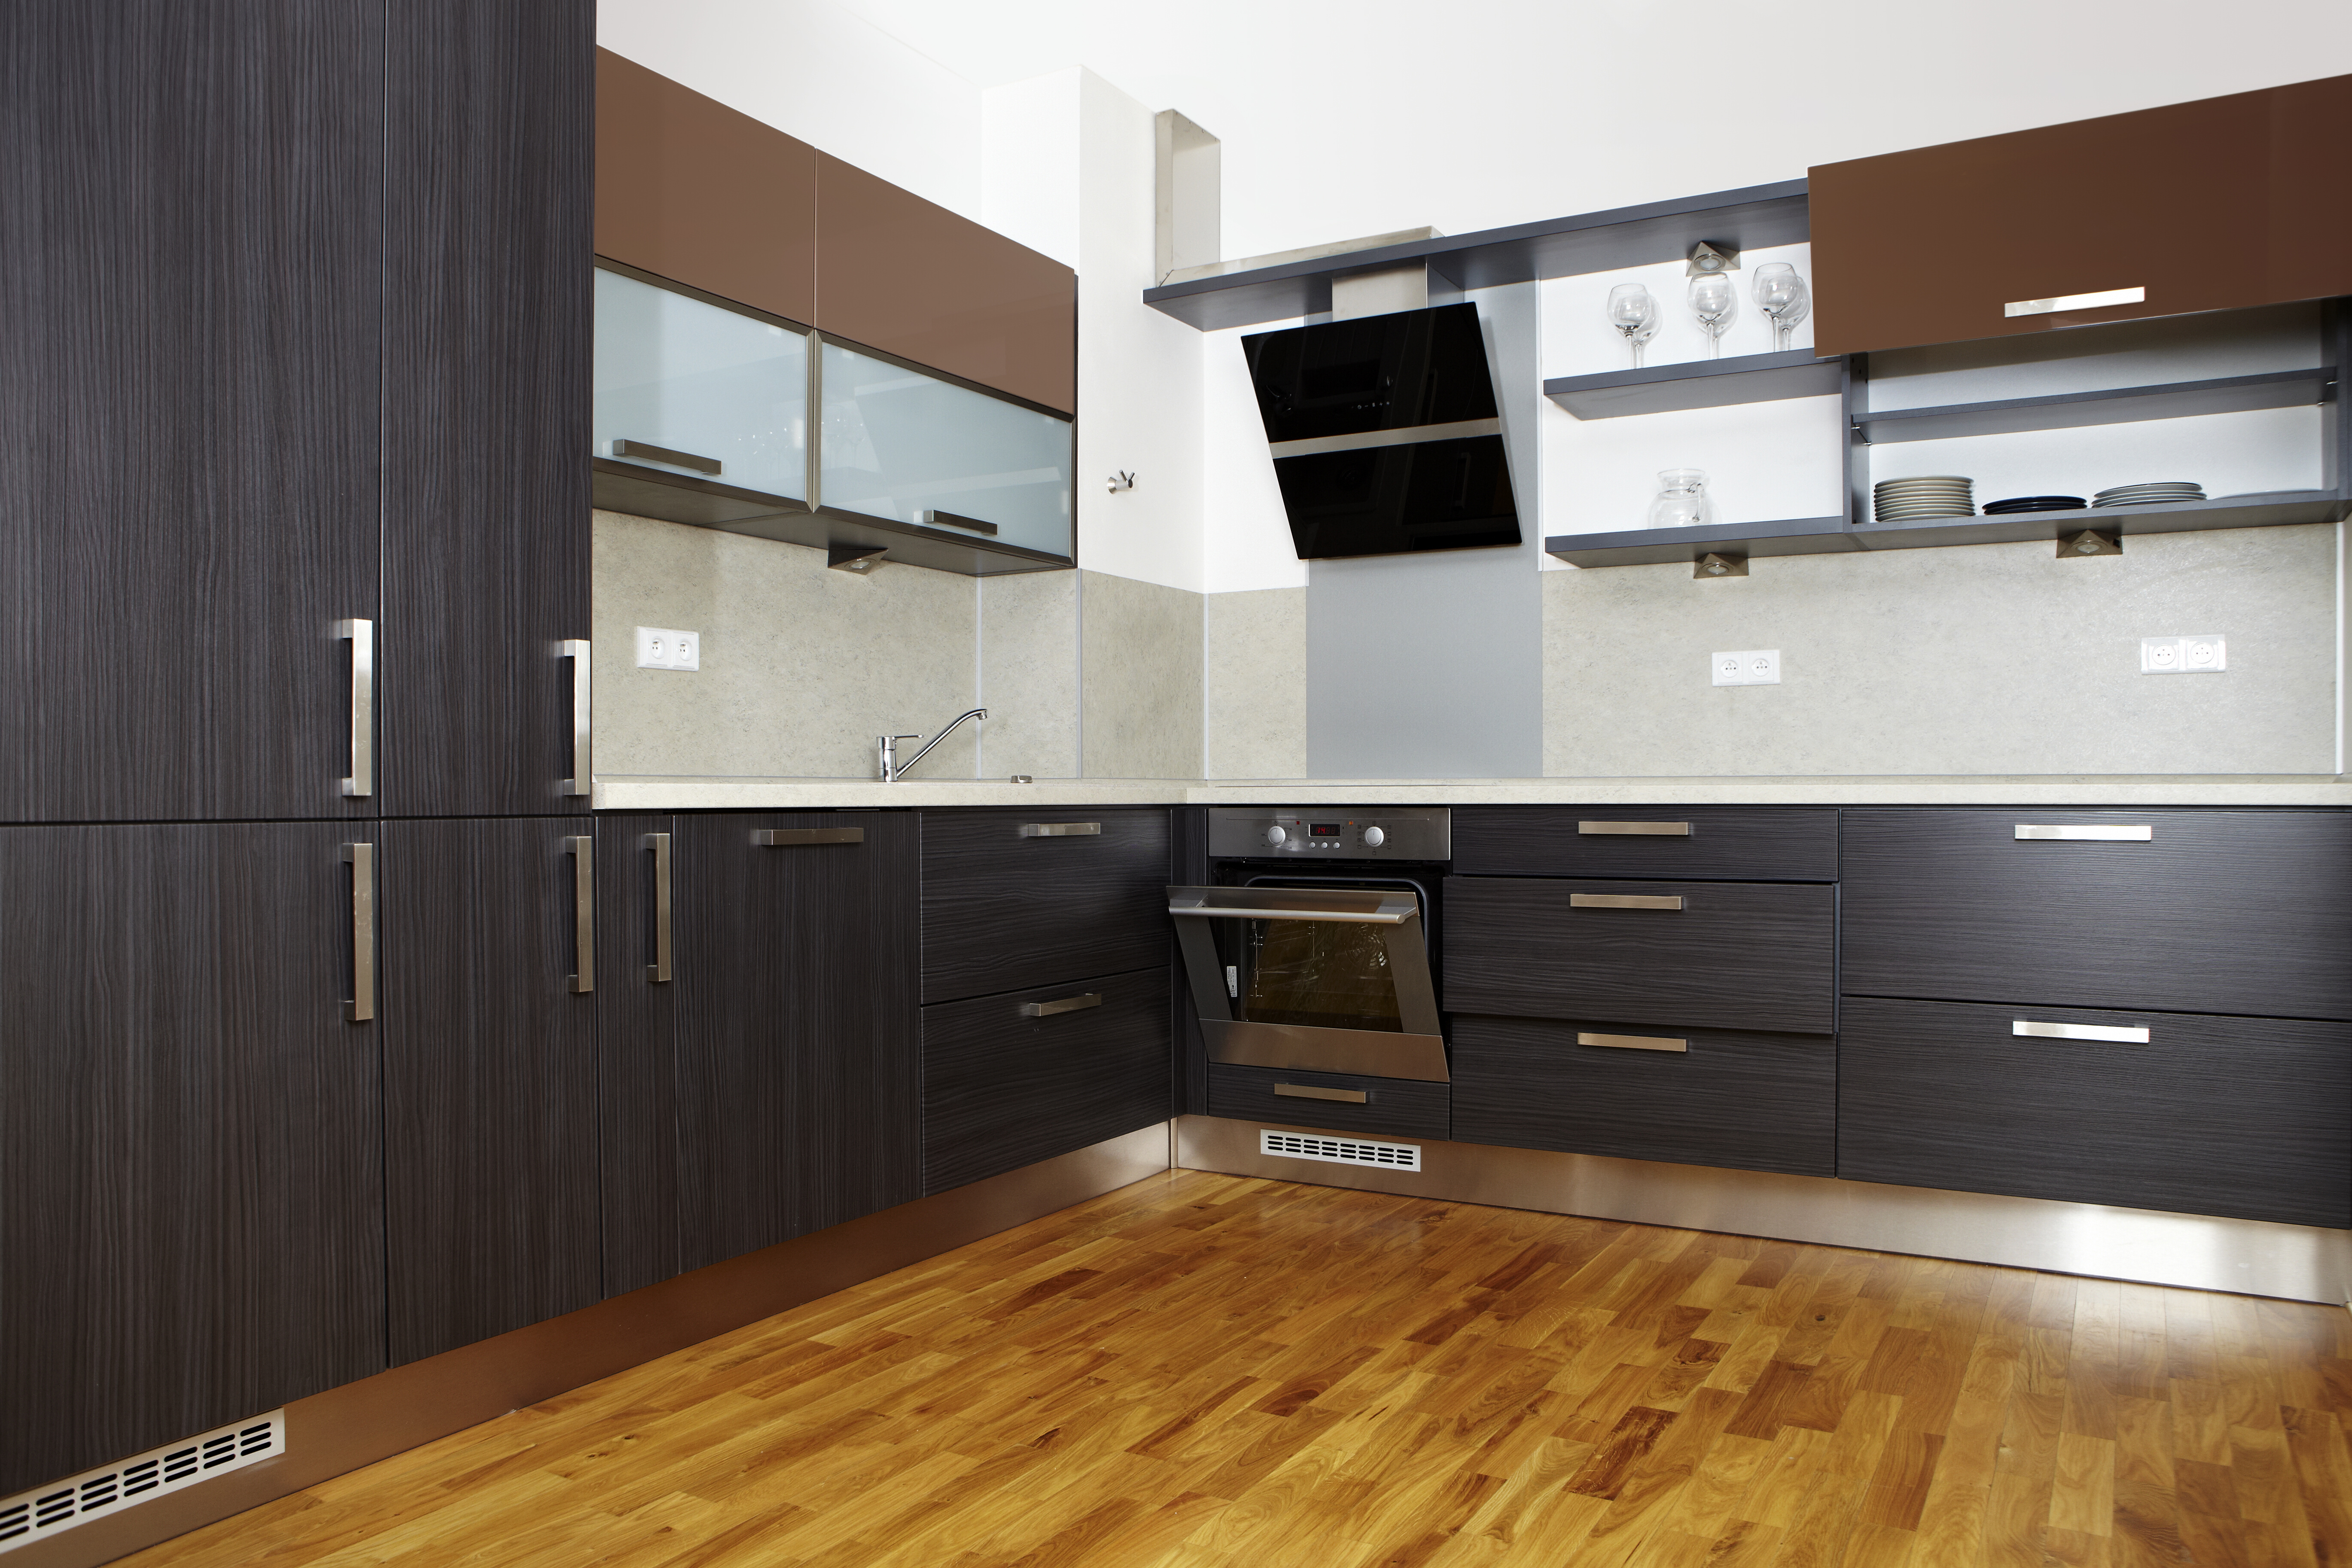 Modern and nice design kitchen interior in contemporary city building